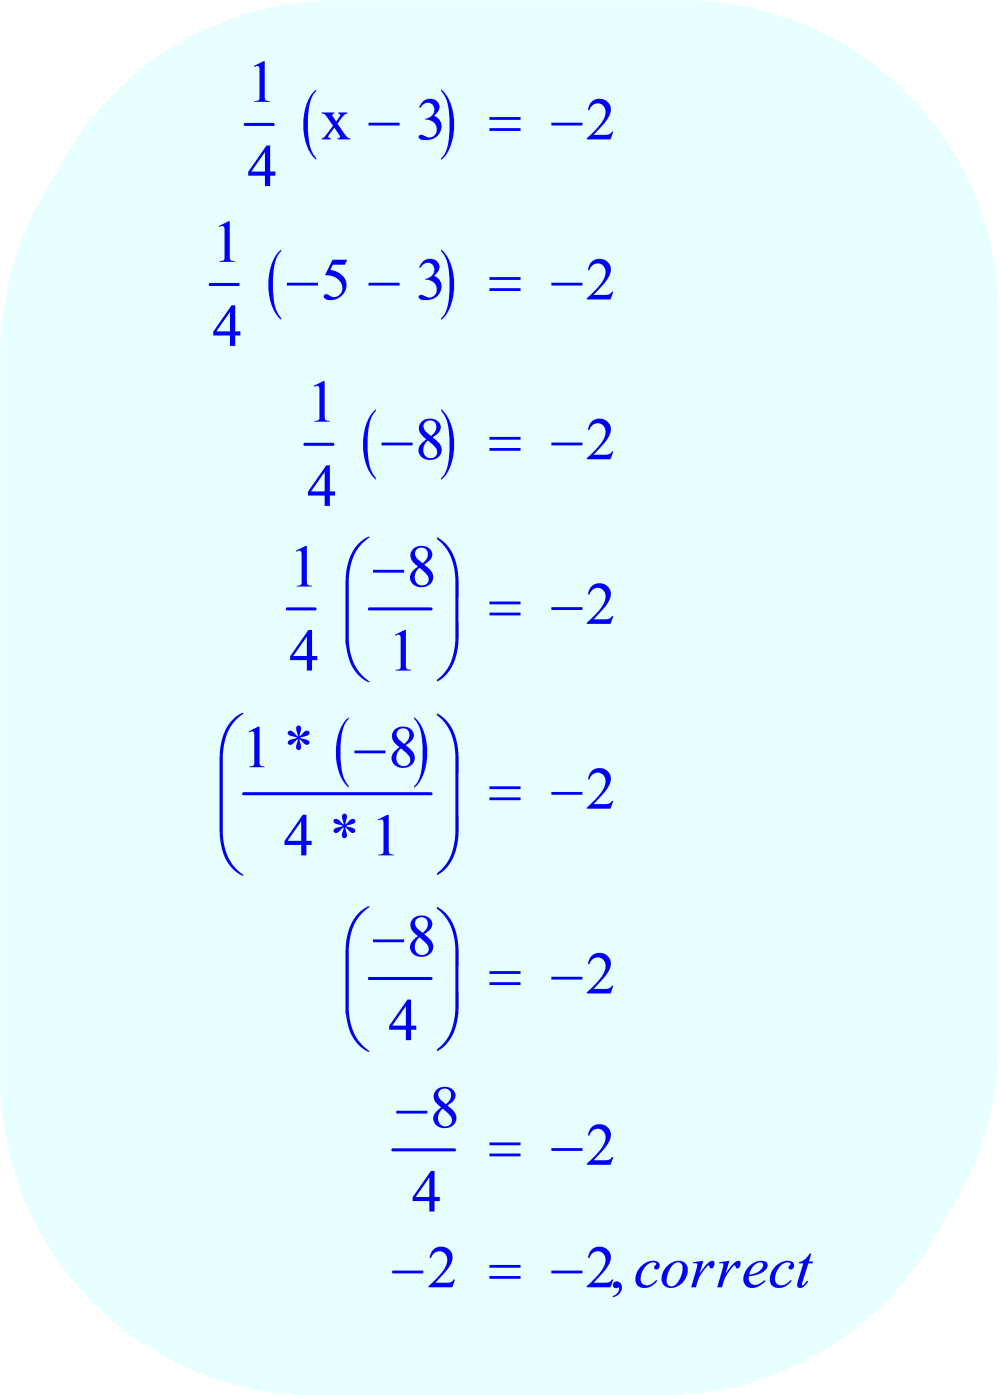 Check the answer by substituting -5 for x in the original equation